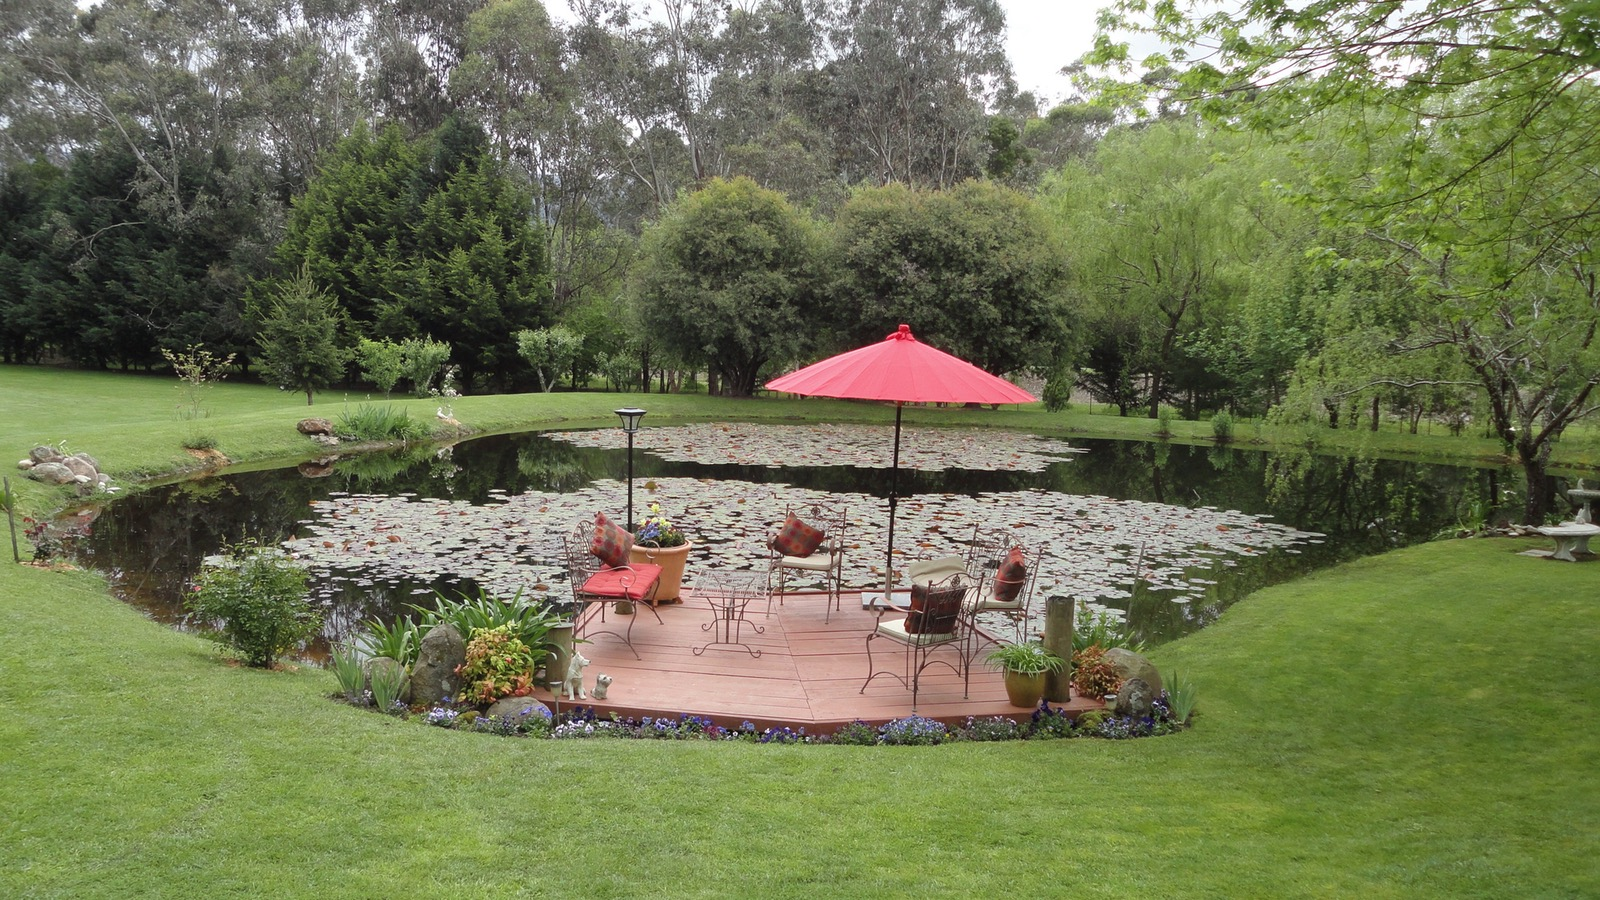 Beautifully landscaped country garden